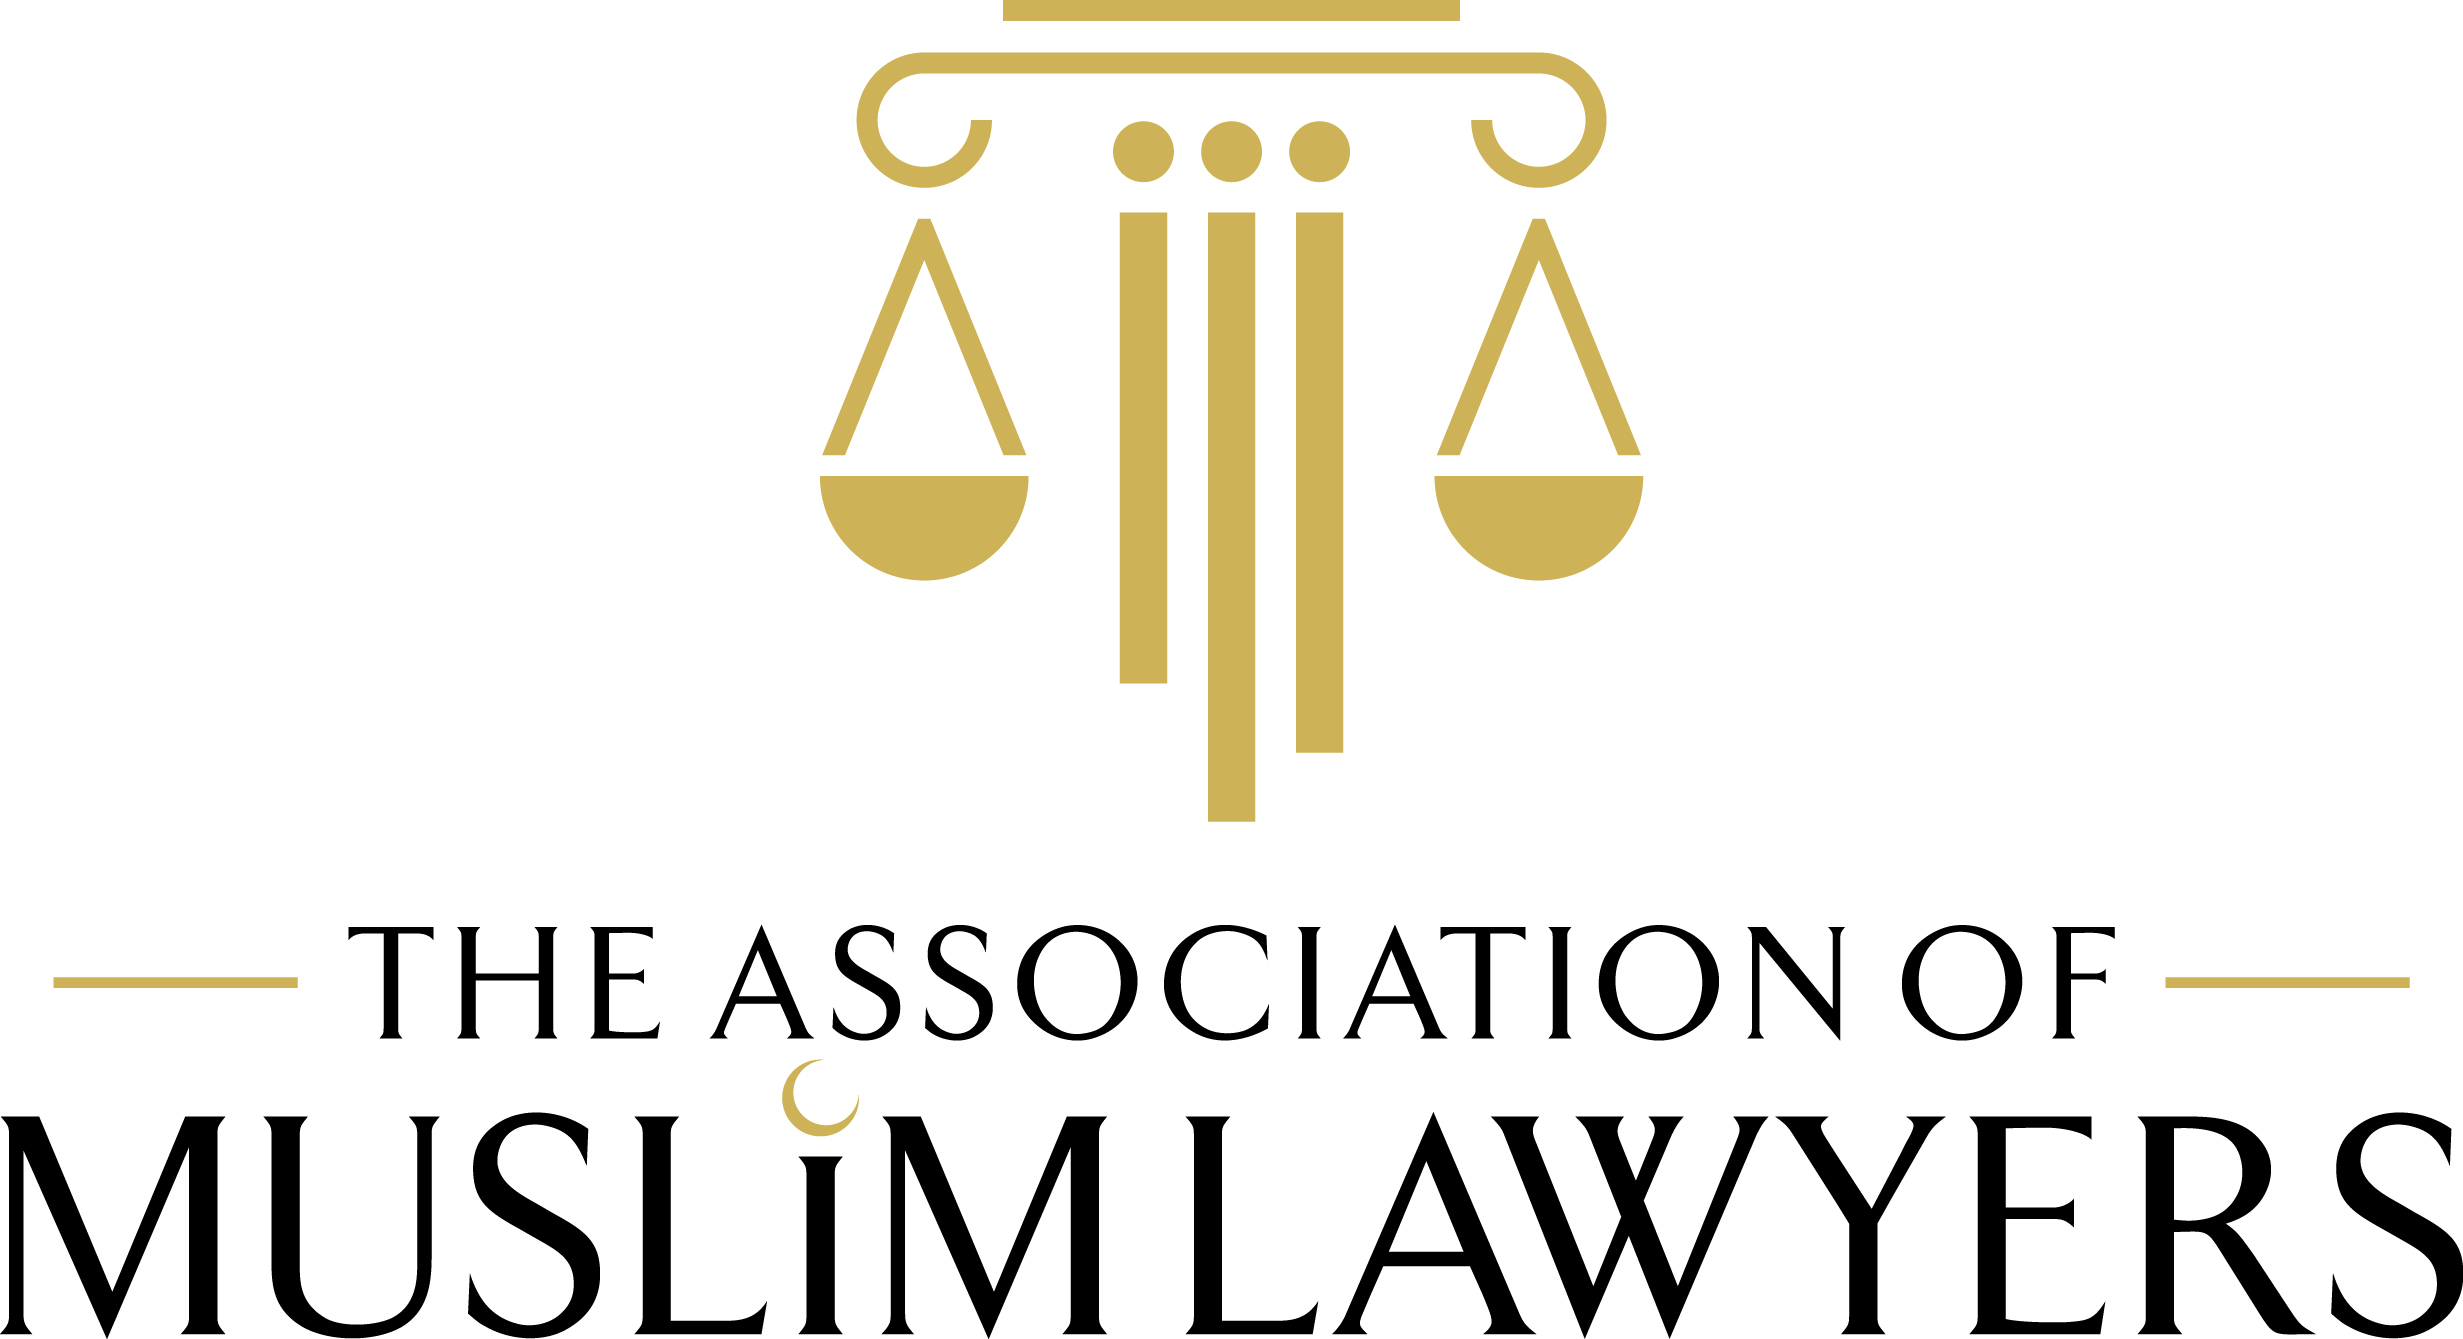 The Association of Muslim Lawyers